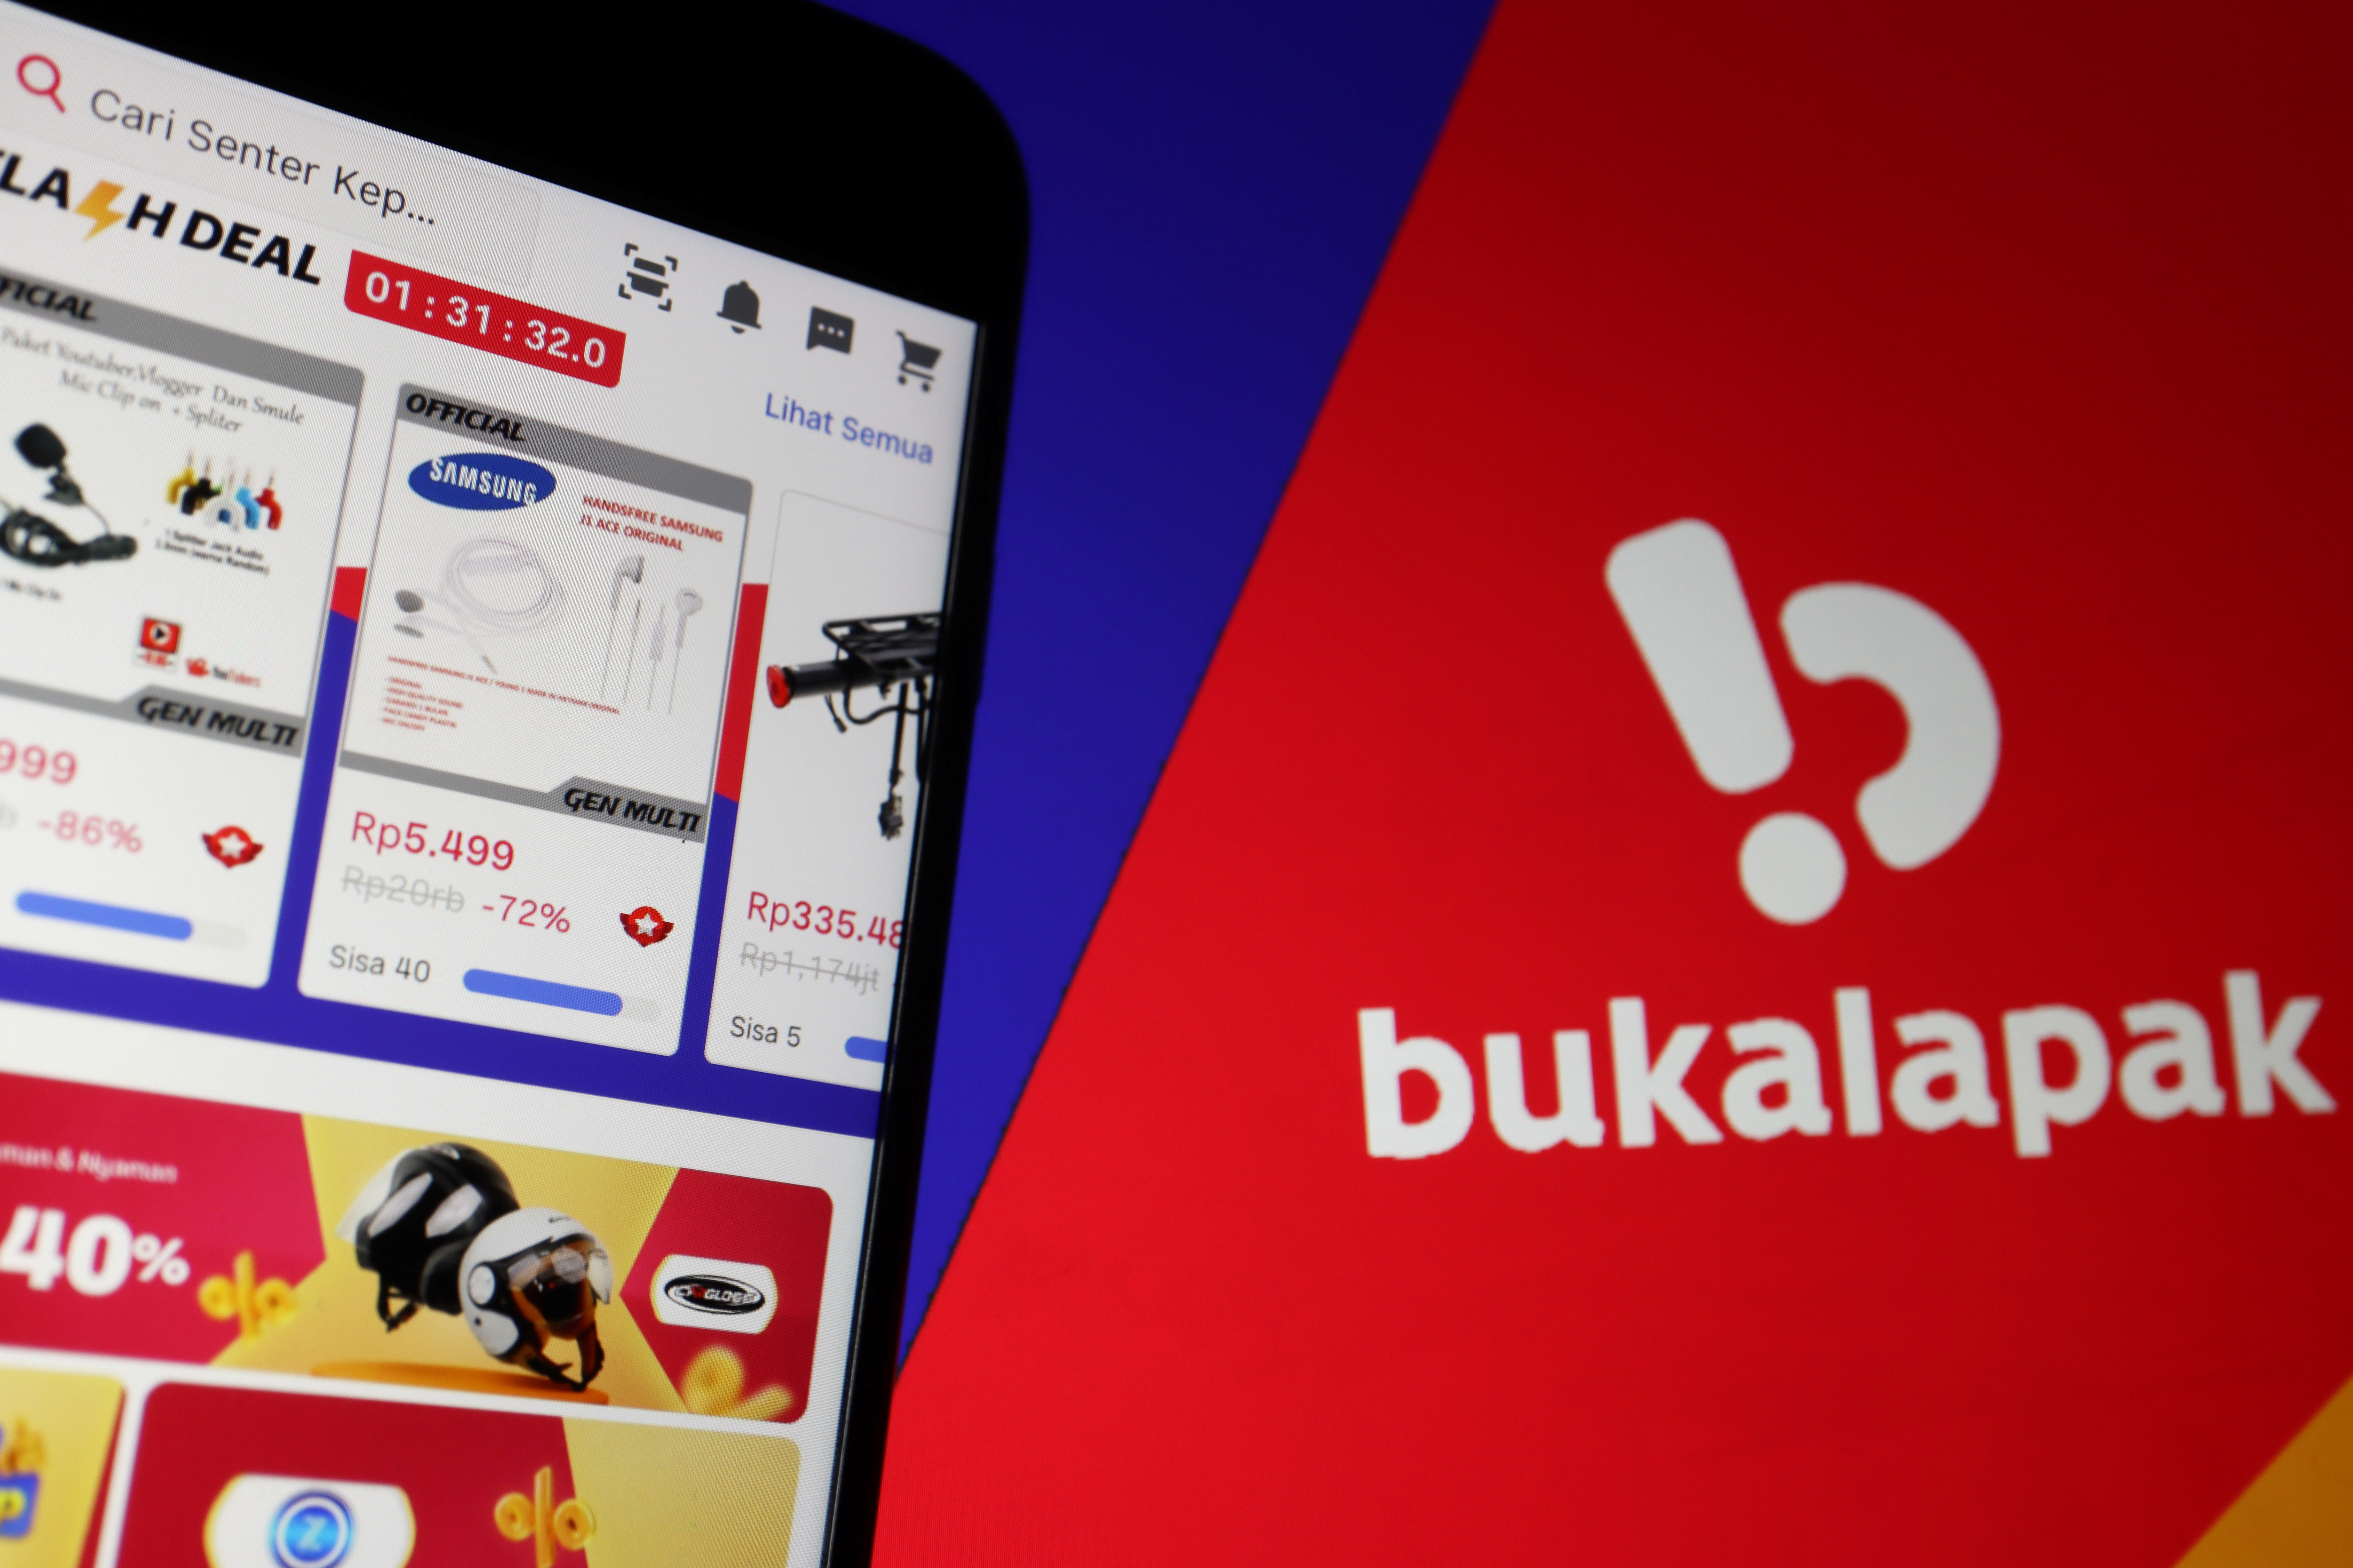 The app of Indonesian e-commerce company Bukalapak is seen on a mobile phone next to its logo displayed in this illustration picture taken July 14, 2021. REUTERS/Florence Lo/Illustration